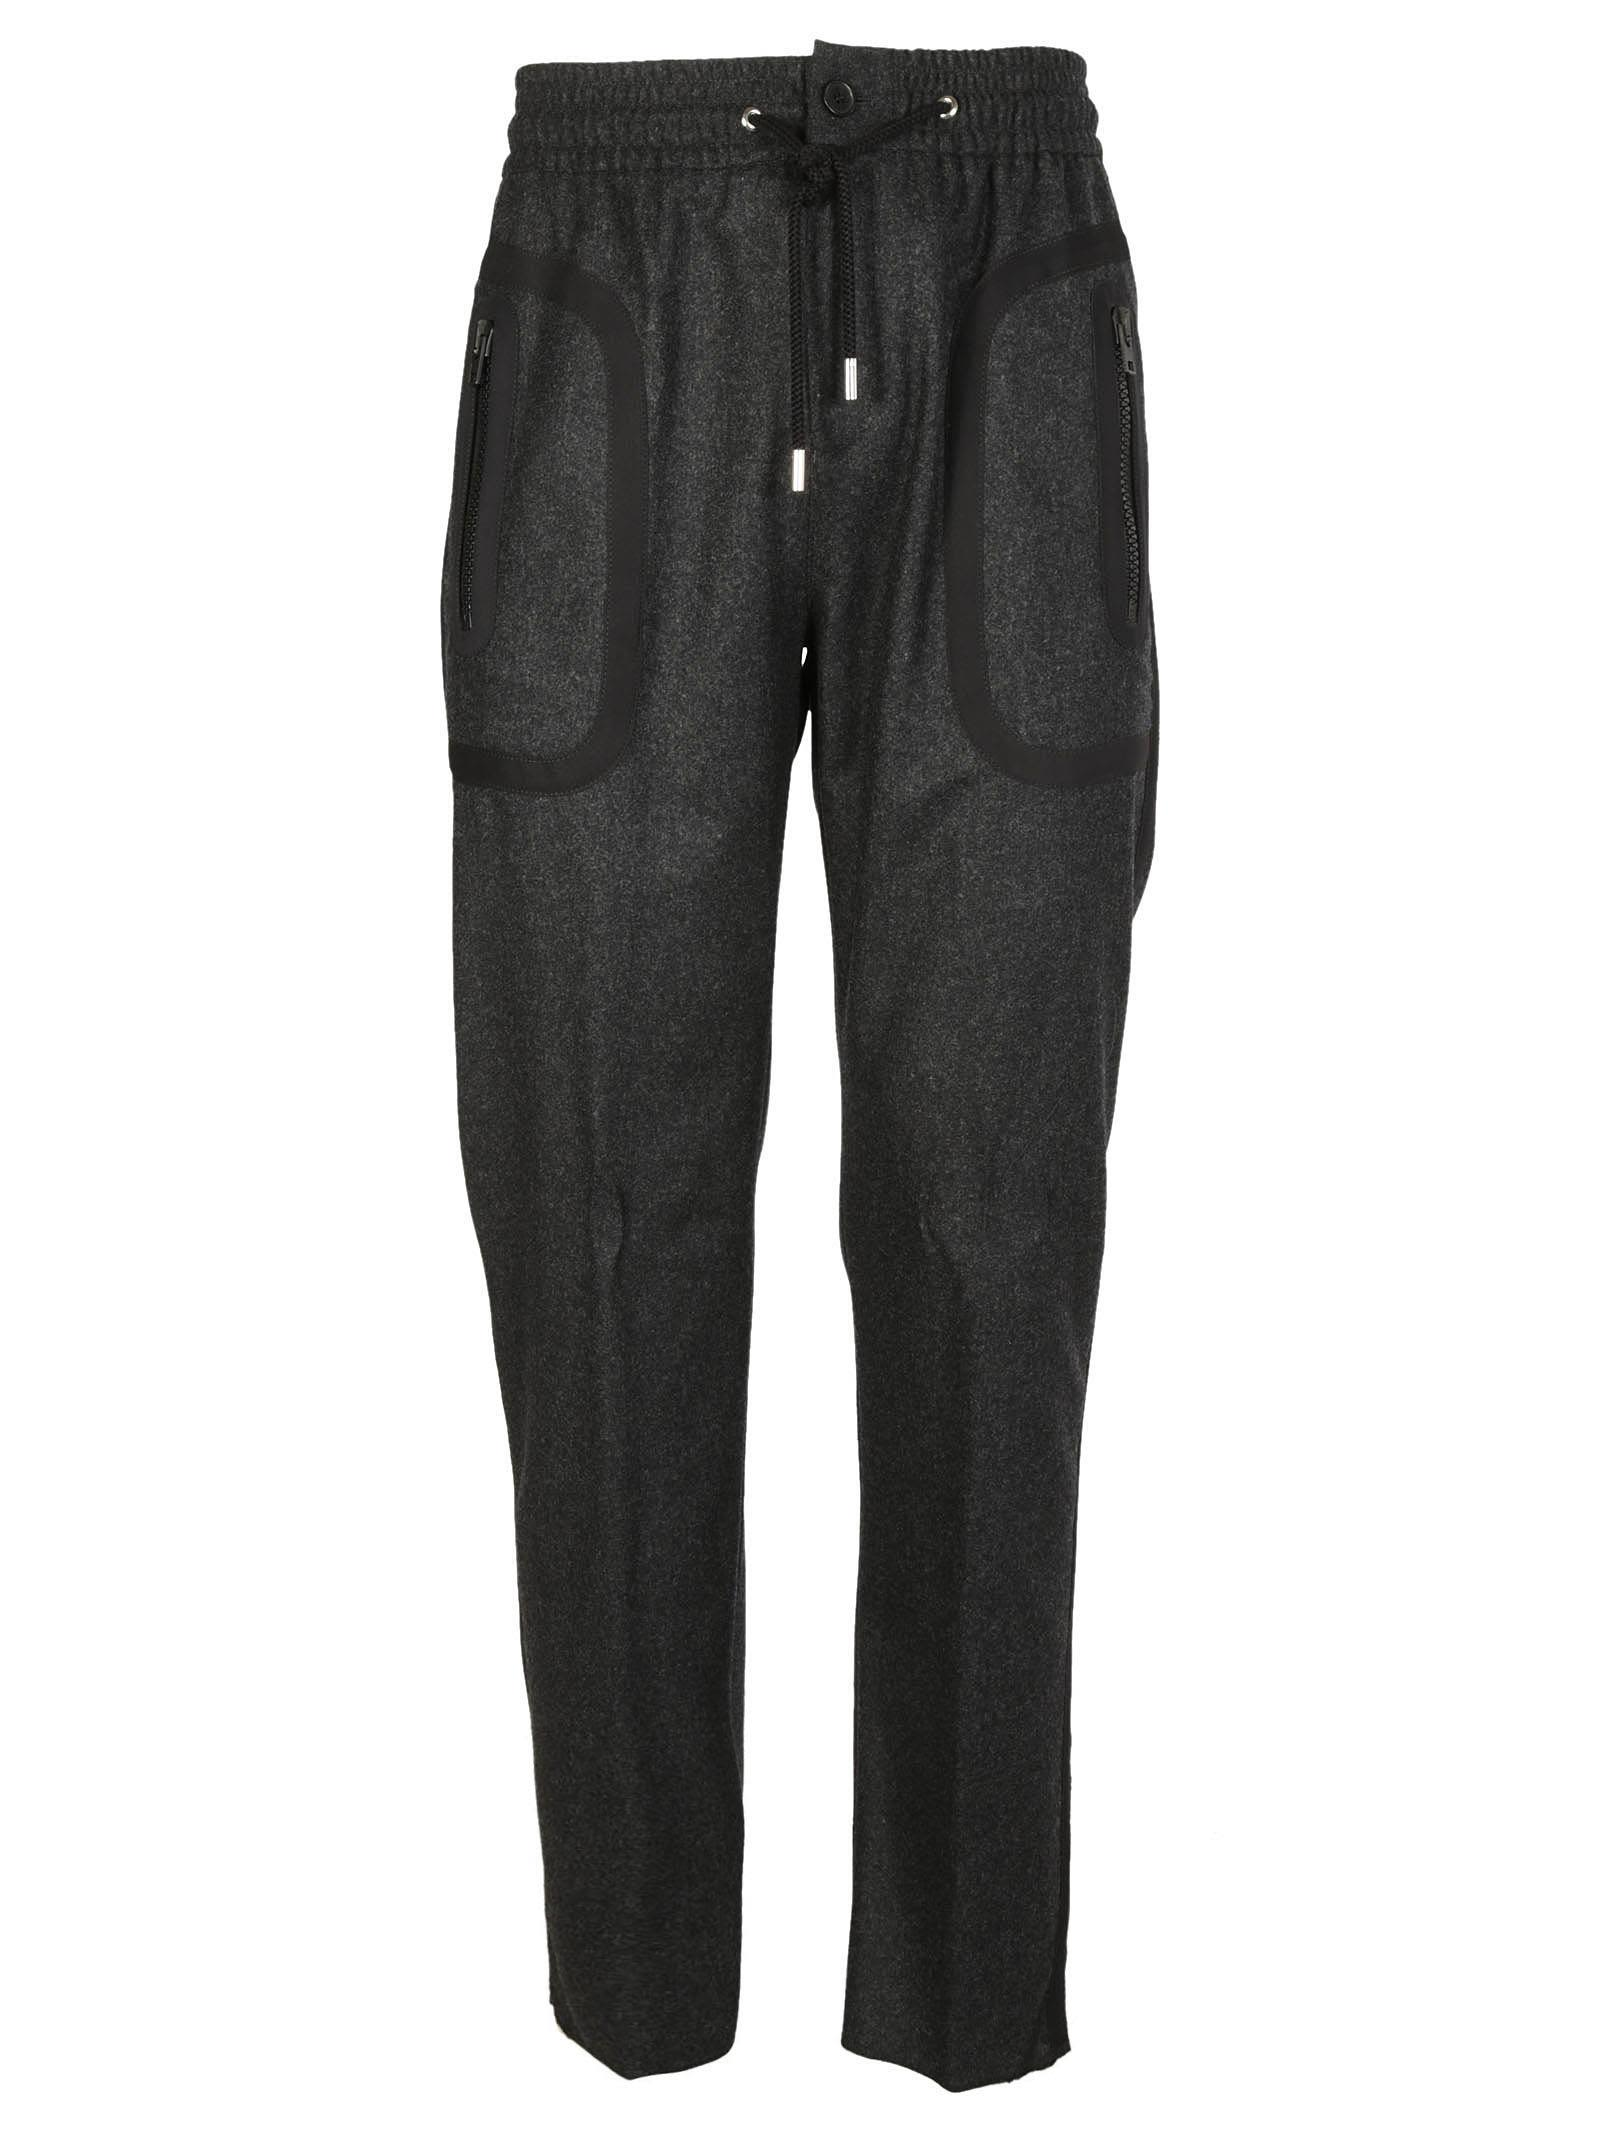 Givenchy Size Zipped Track Pants